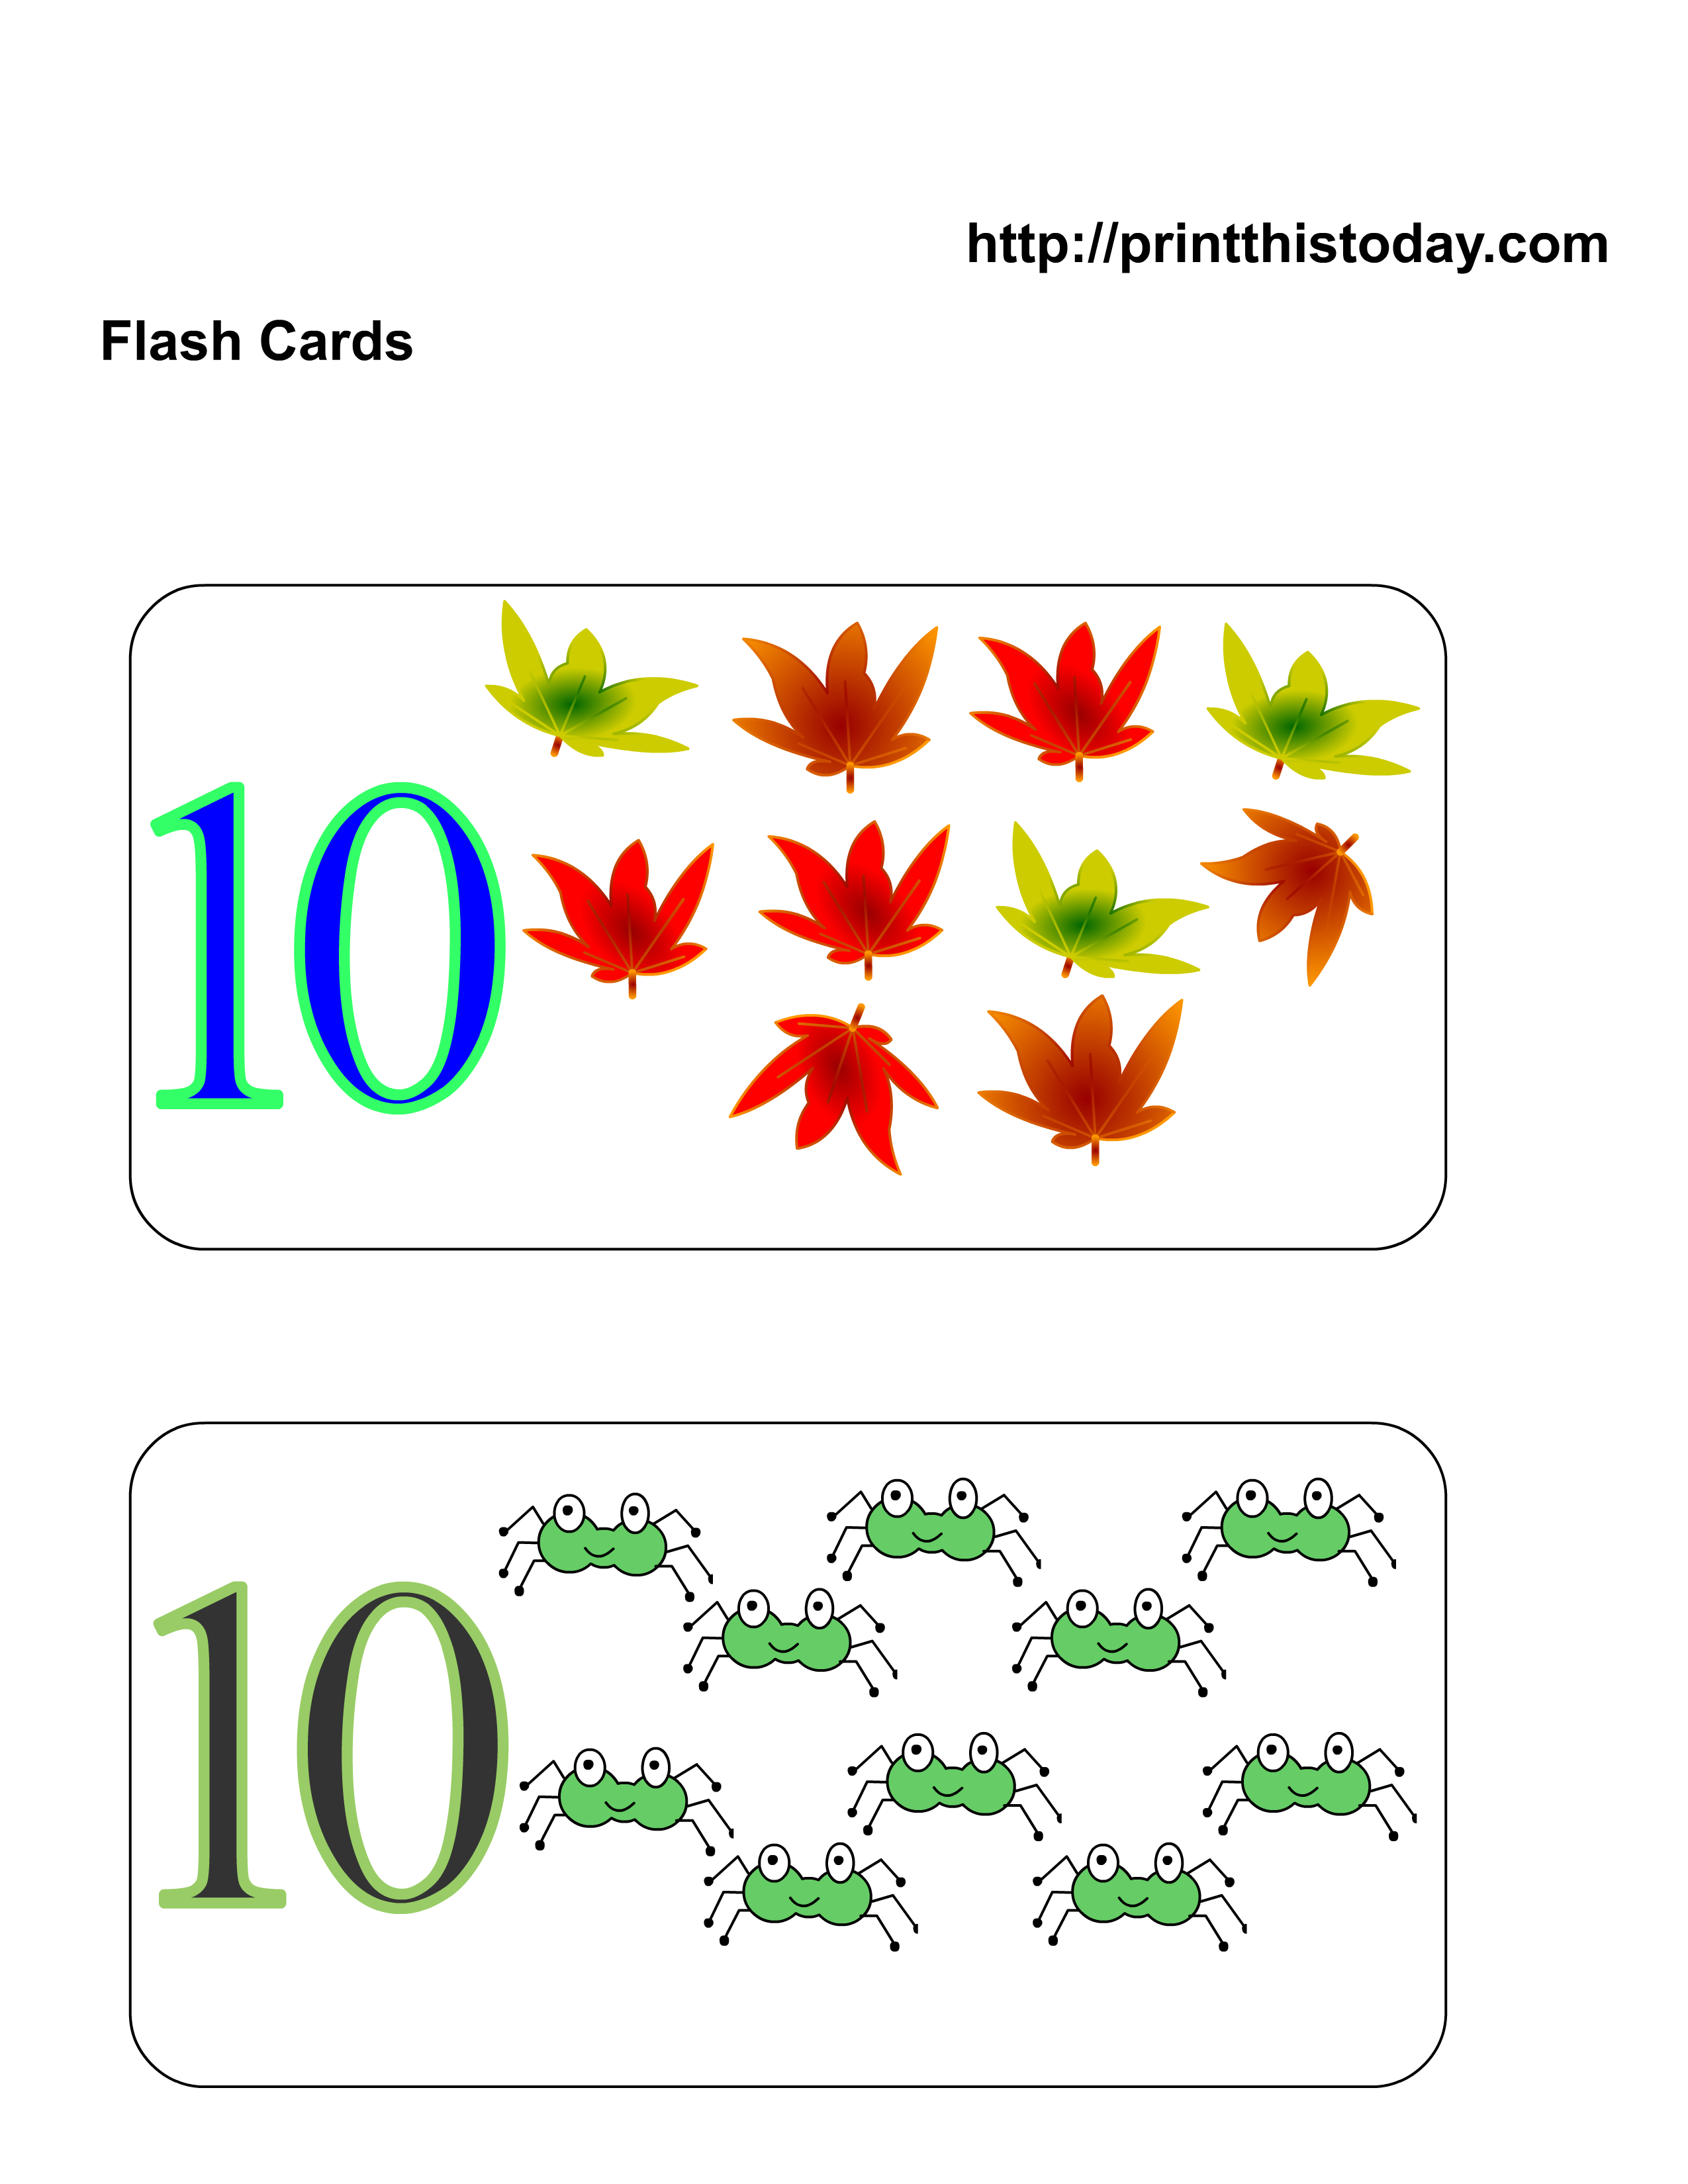 Worksheet Flashcards For Kindergarten free printable kindergarten math flashcards flash cards with ten autumn leaves and spiders